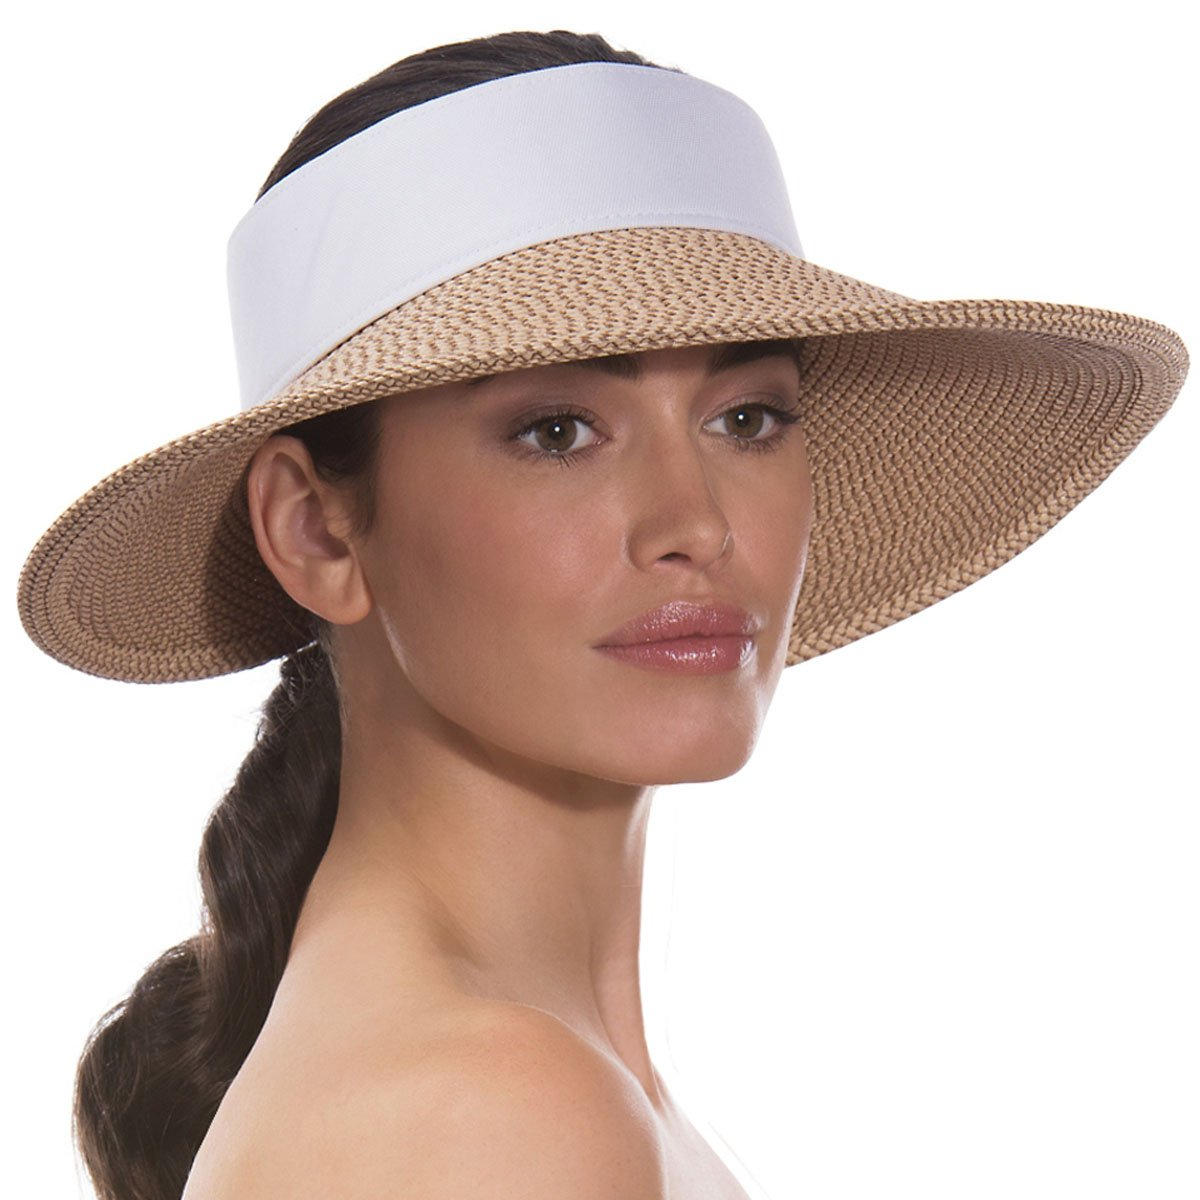 Eric Javits Women s Headwear Hat Squishee Halo One Size Peanut White   Amazon.co.uk  Shoes   Bags 630e08c528c